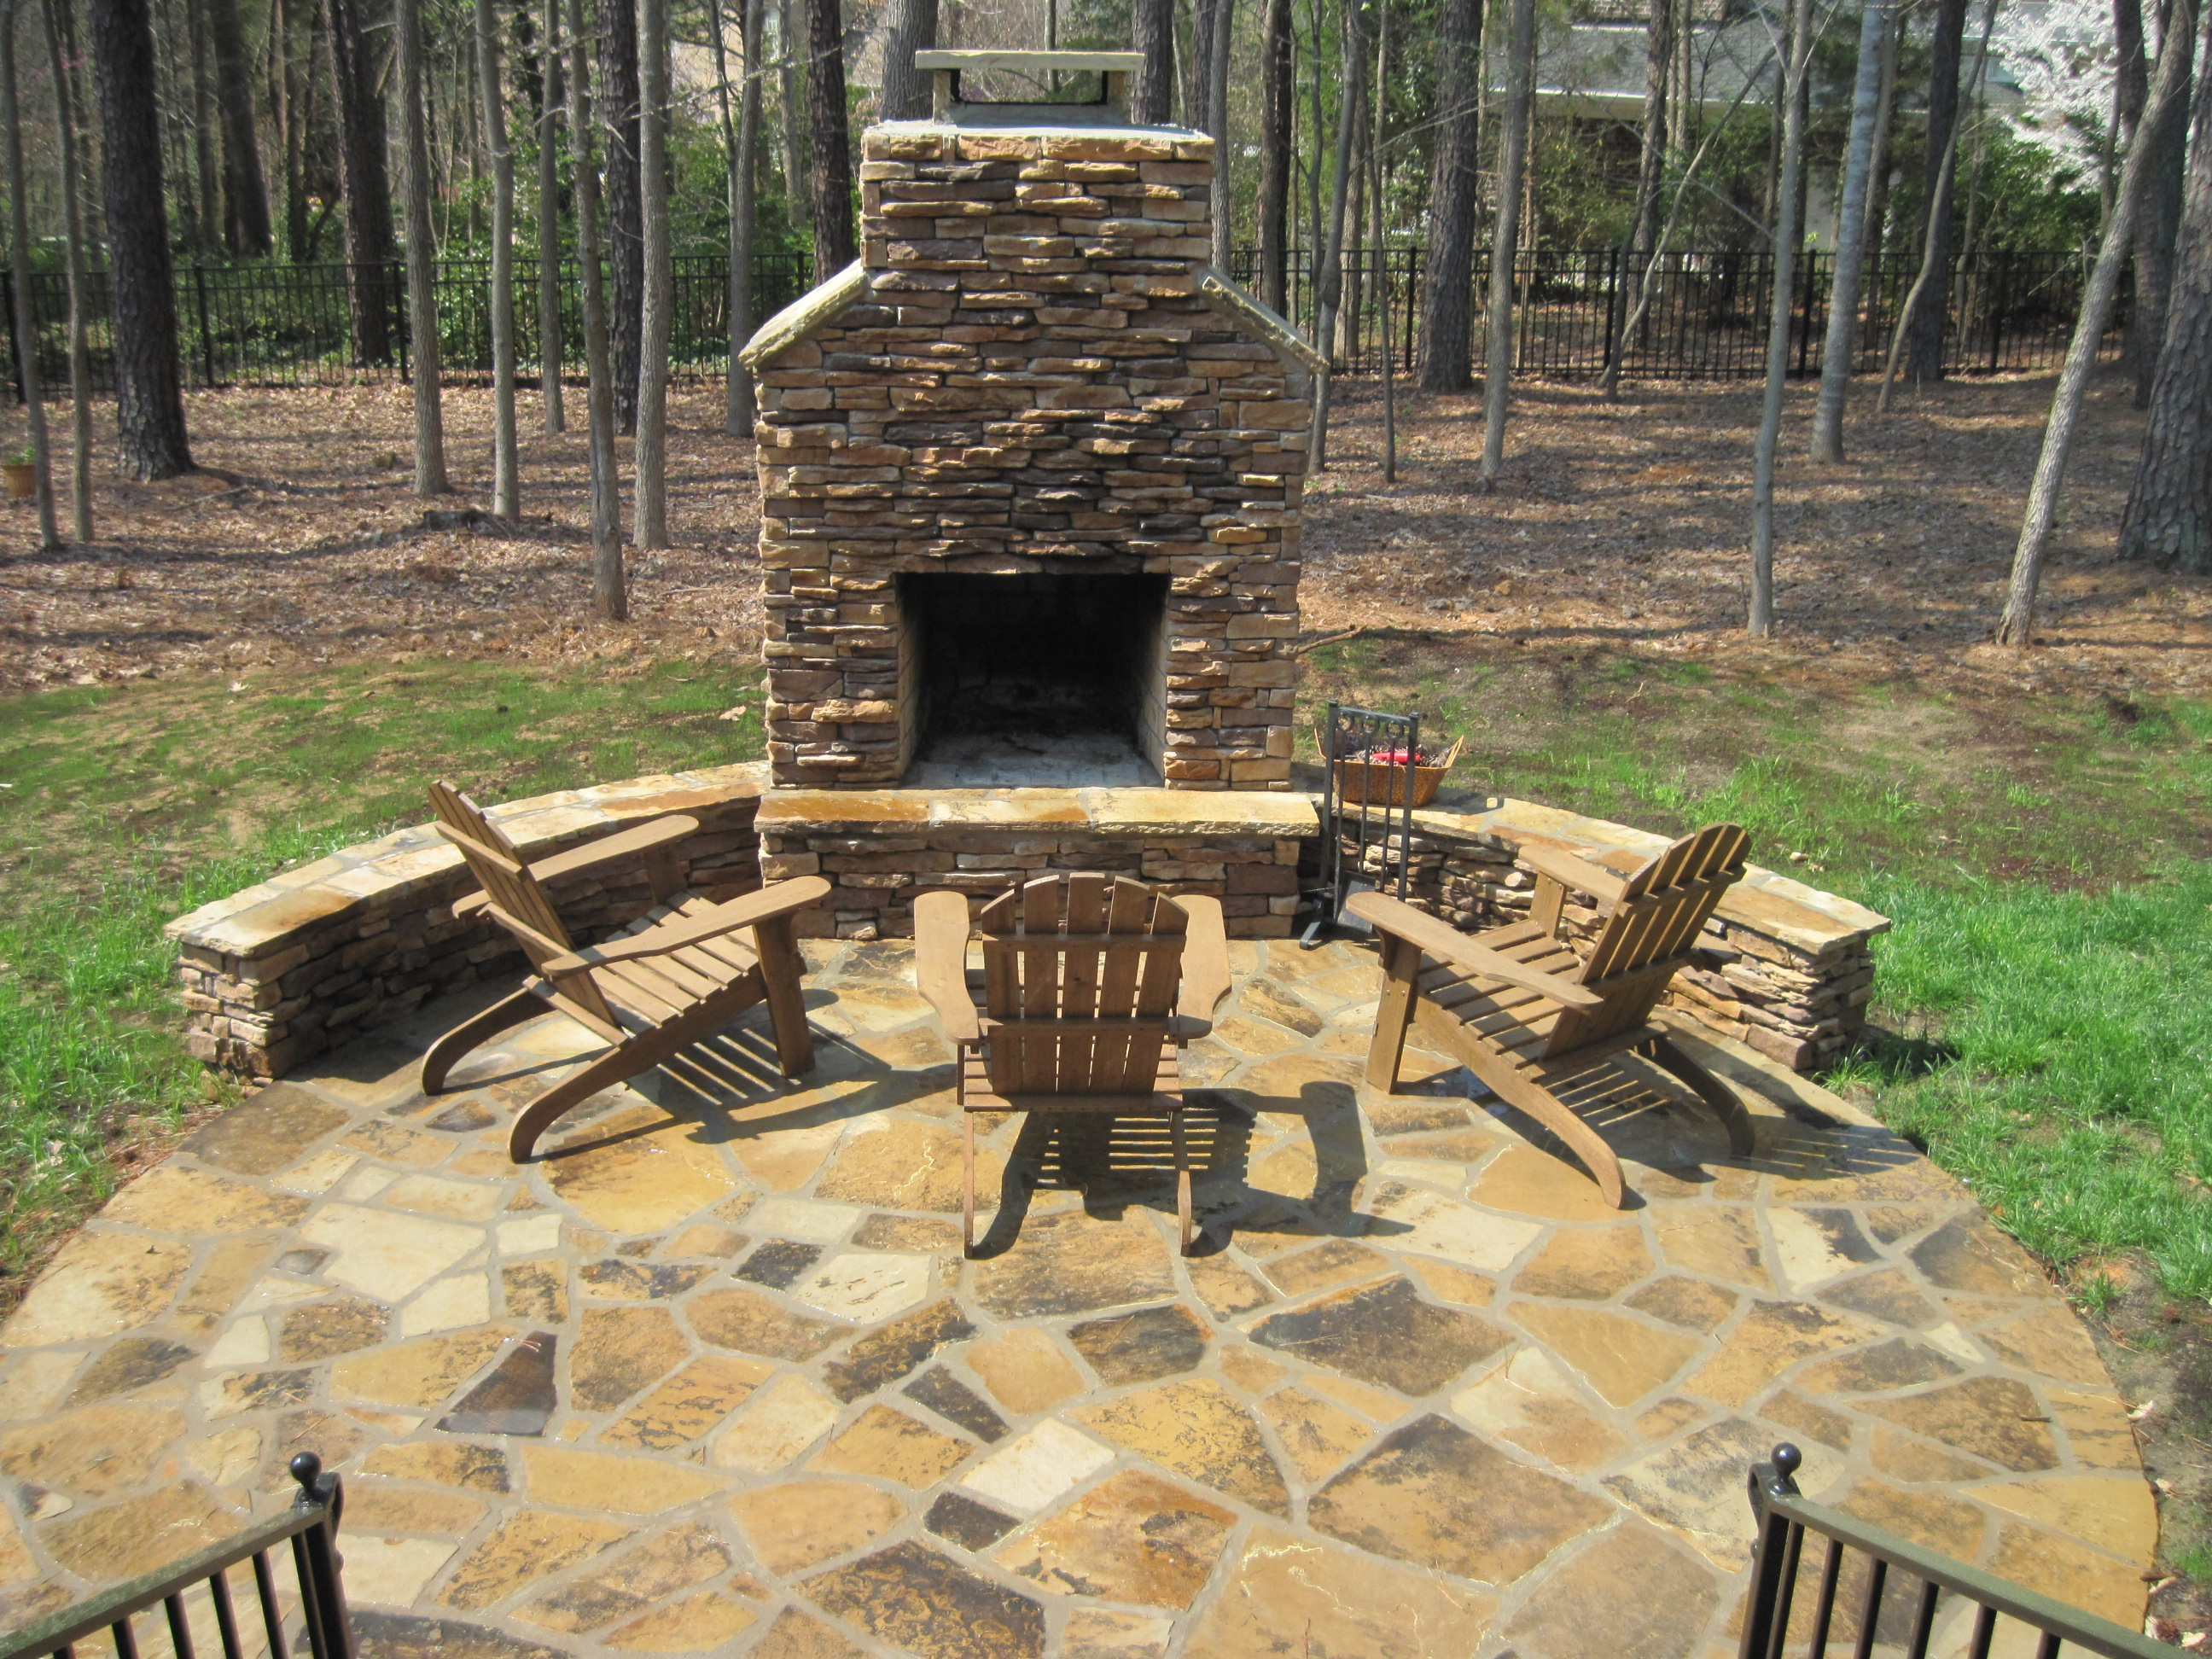 of fire awesome pit unique bomelconsult fireplace a much does walmart cost outdoor how